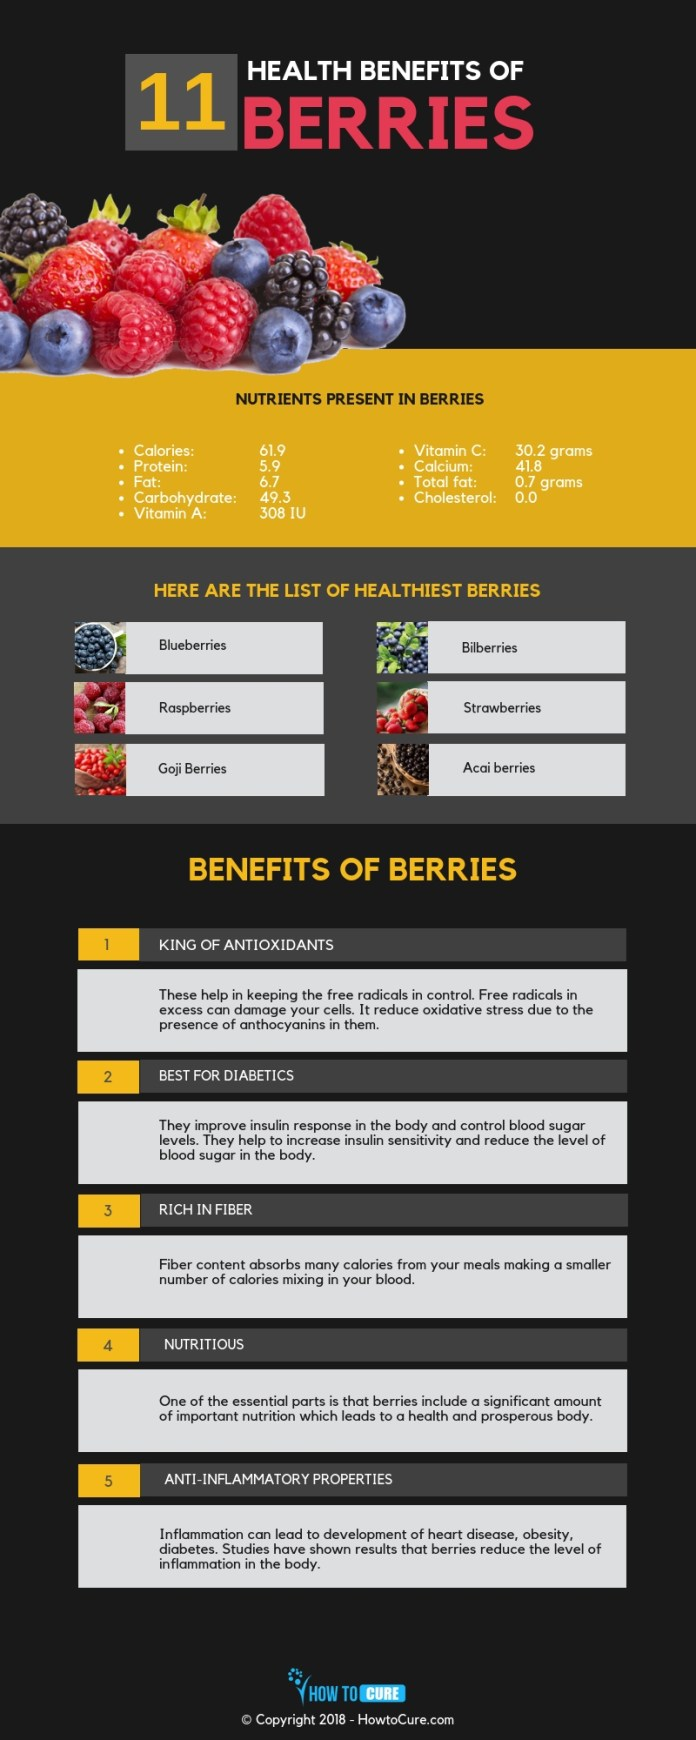 berries infographic